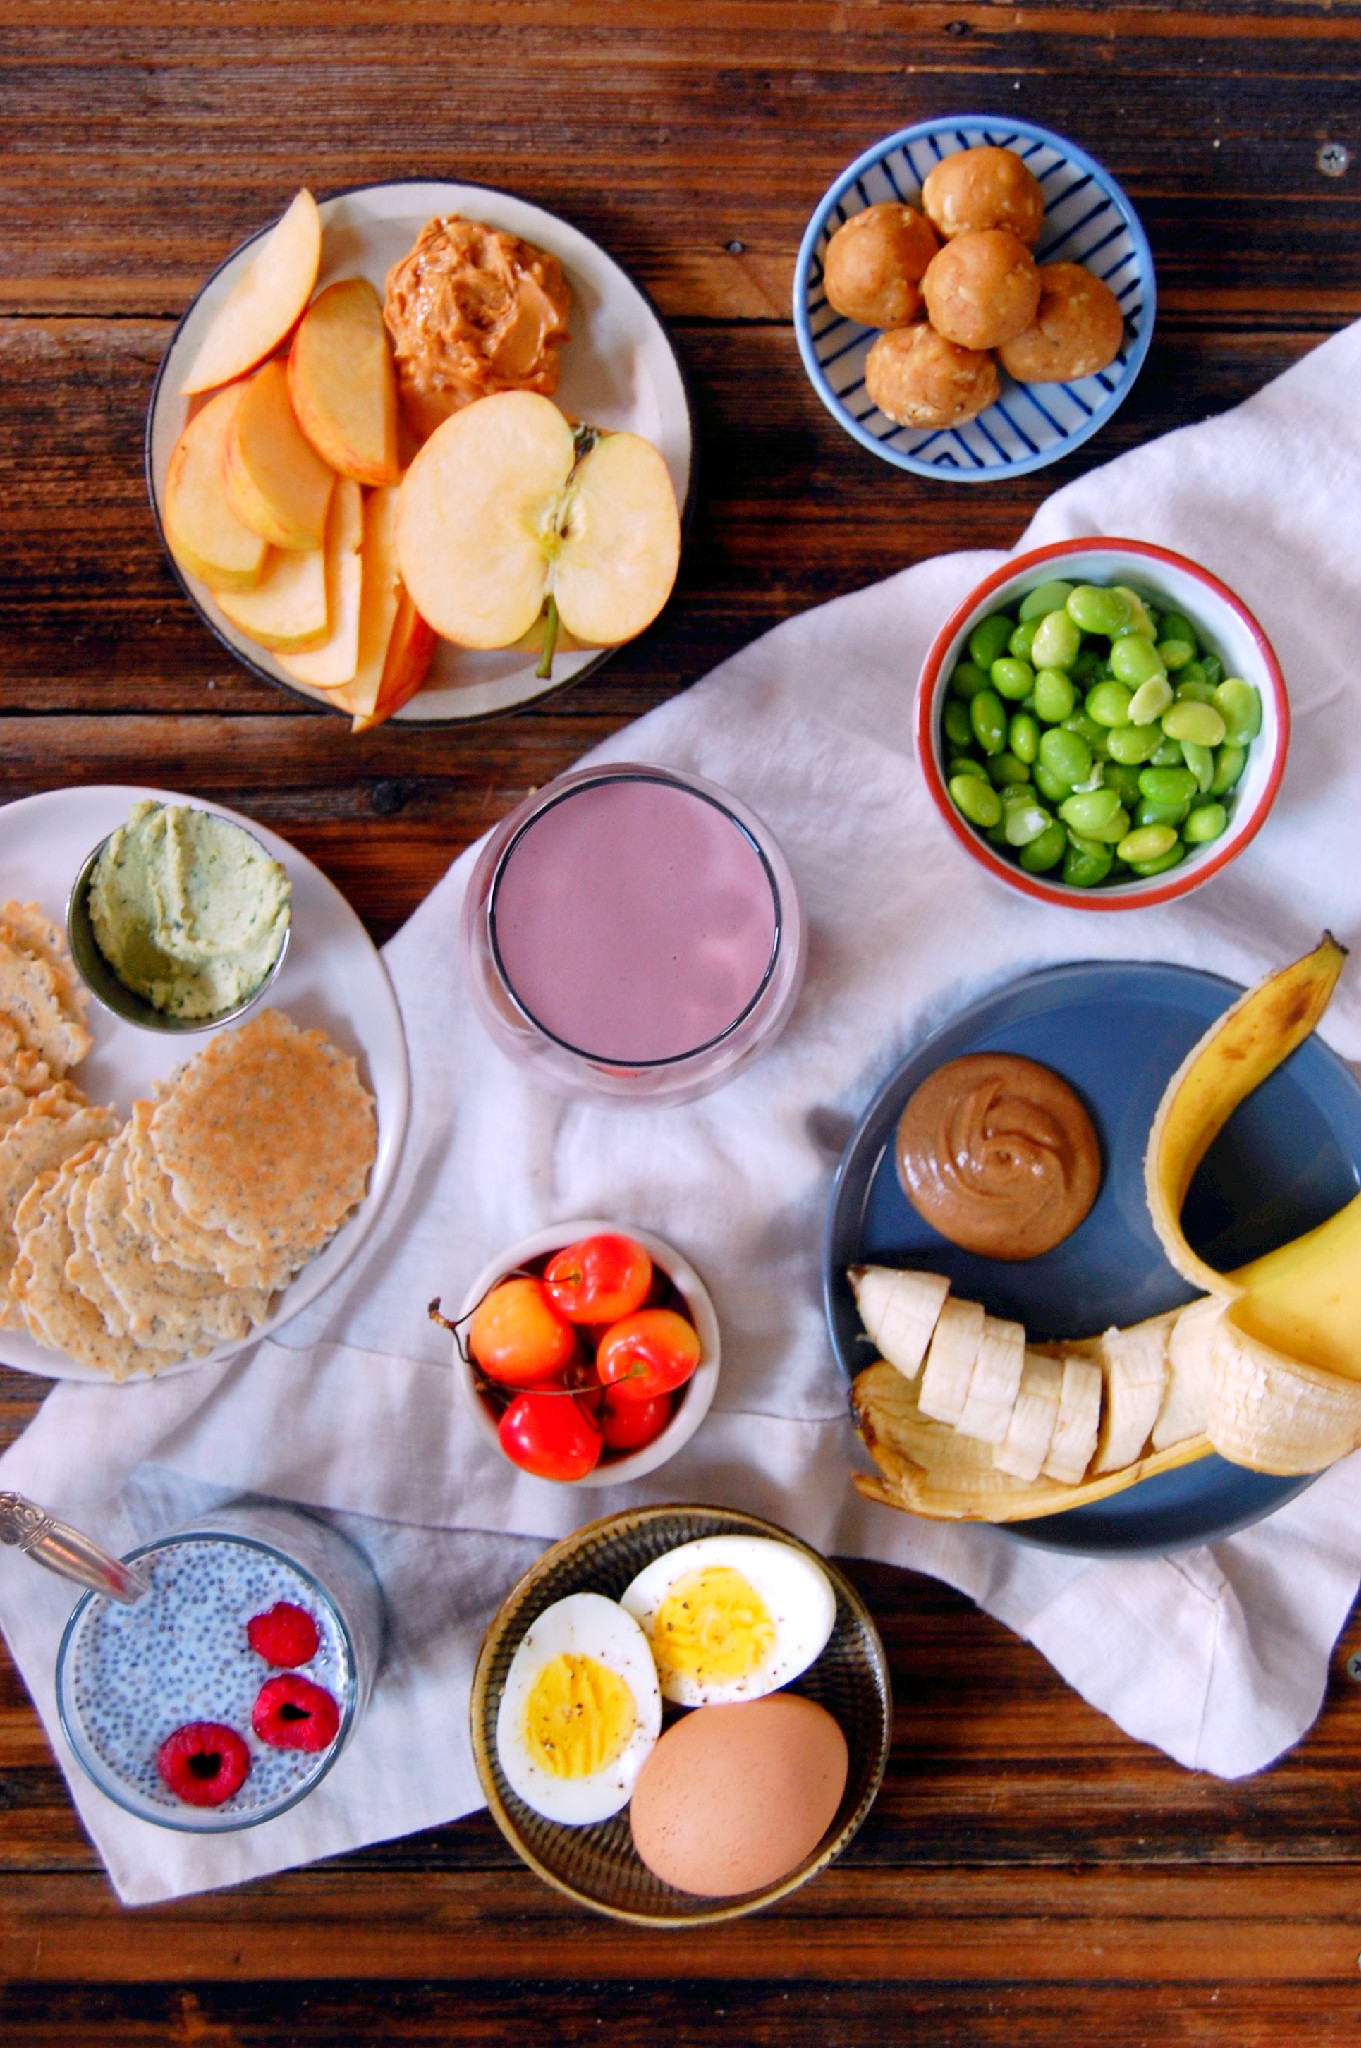 Healthy Post-Workout Snack Ideas